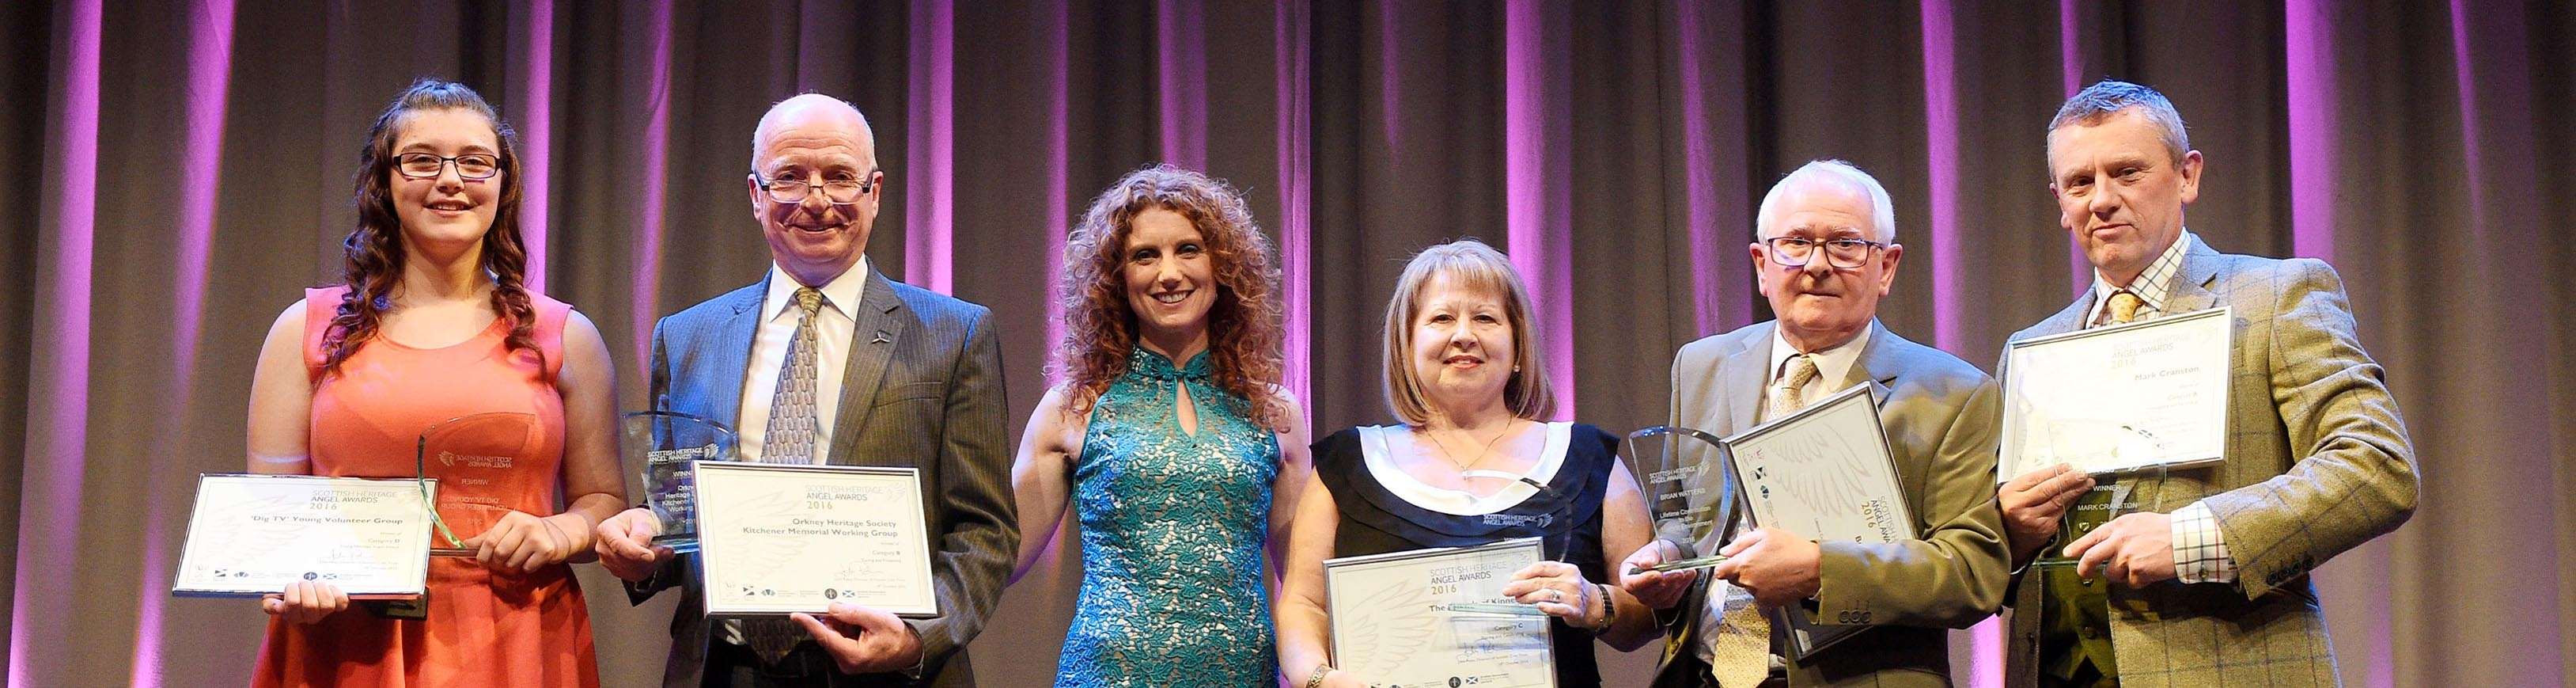 scottish heritage angel awards